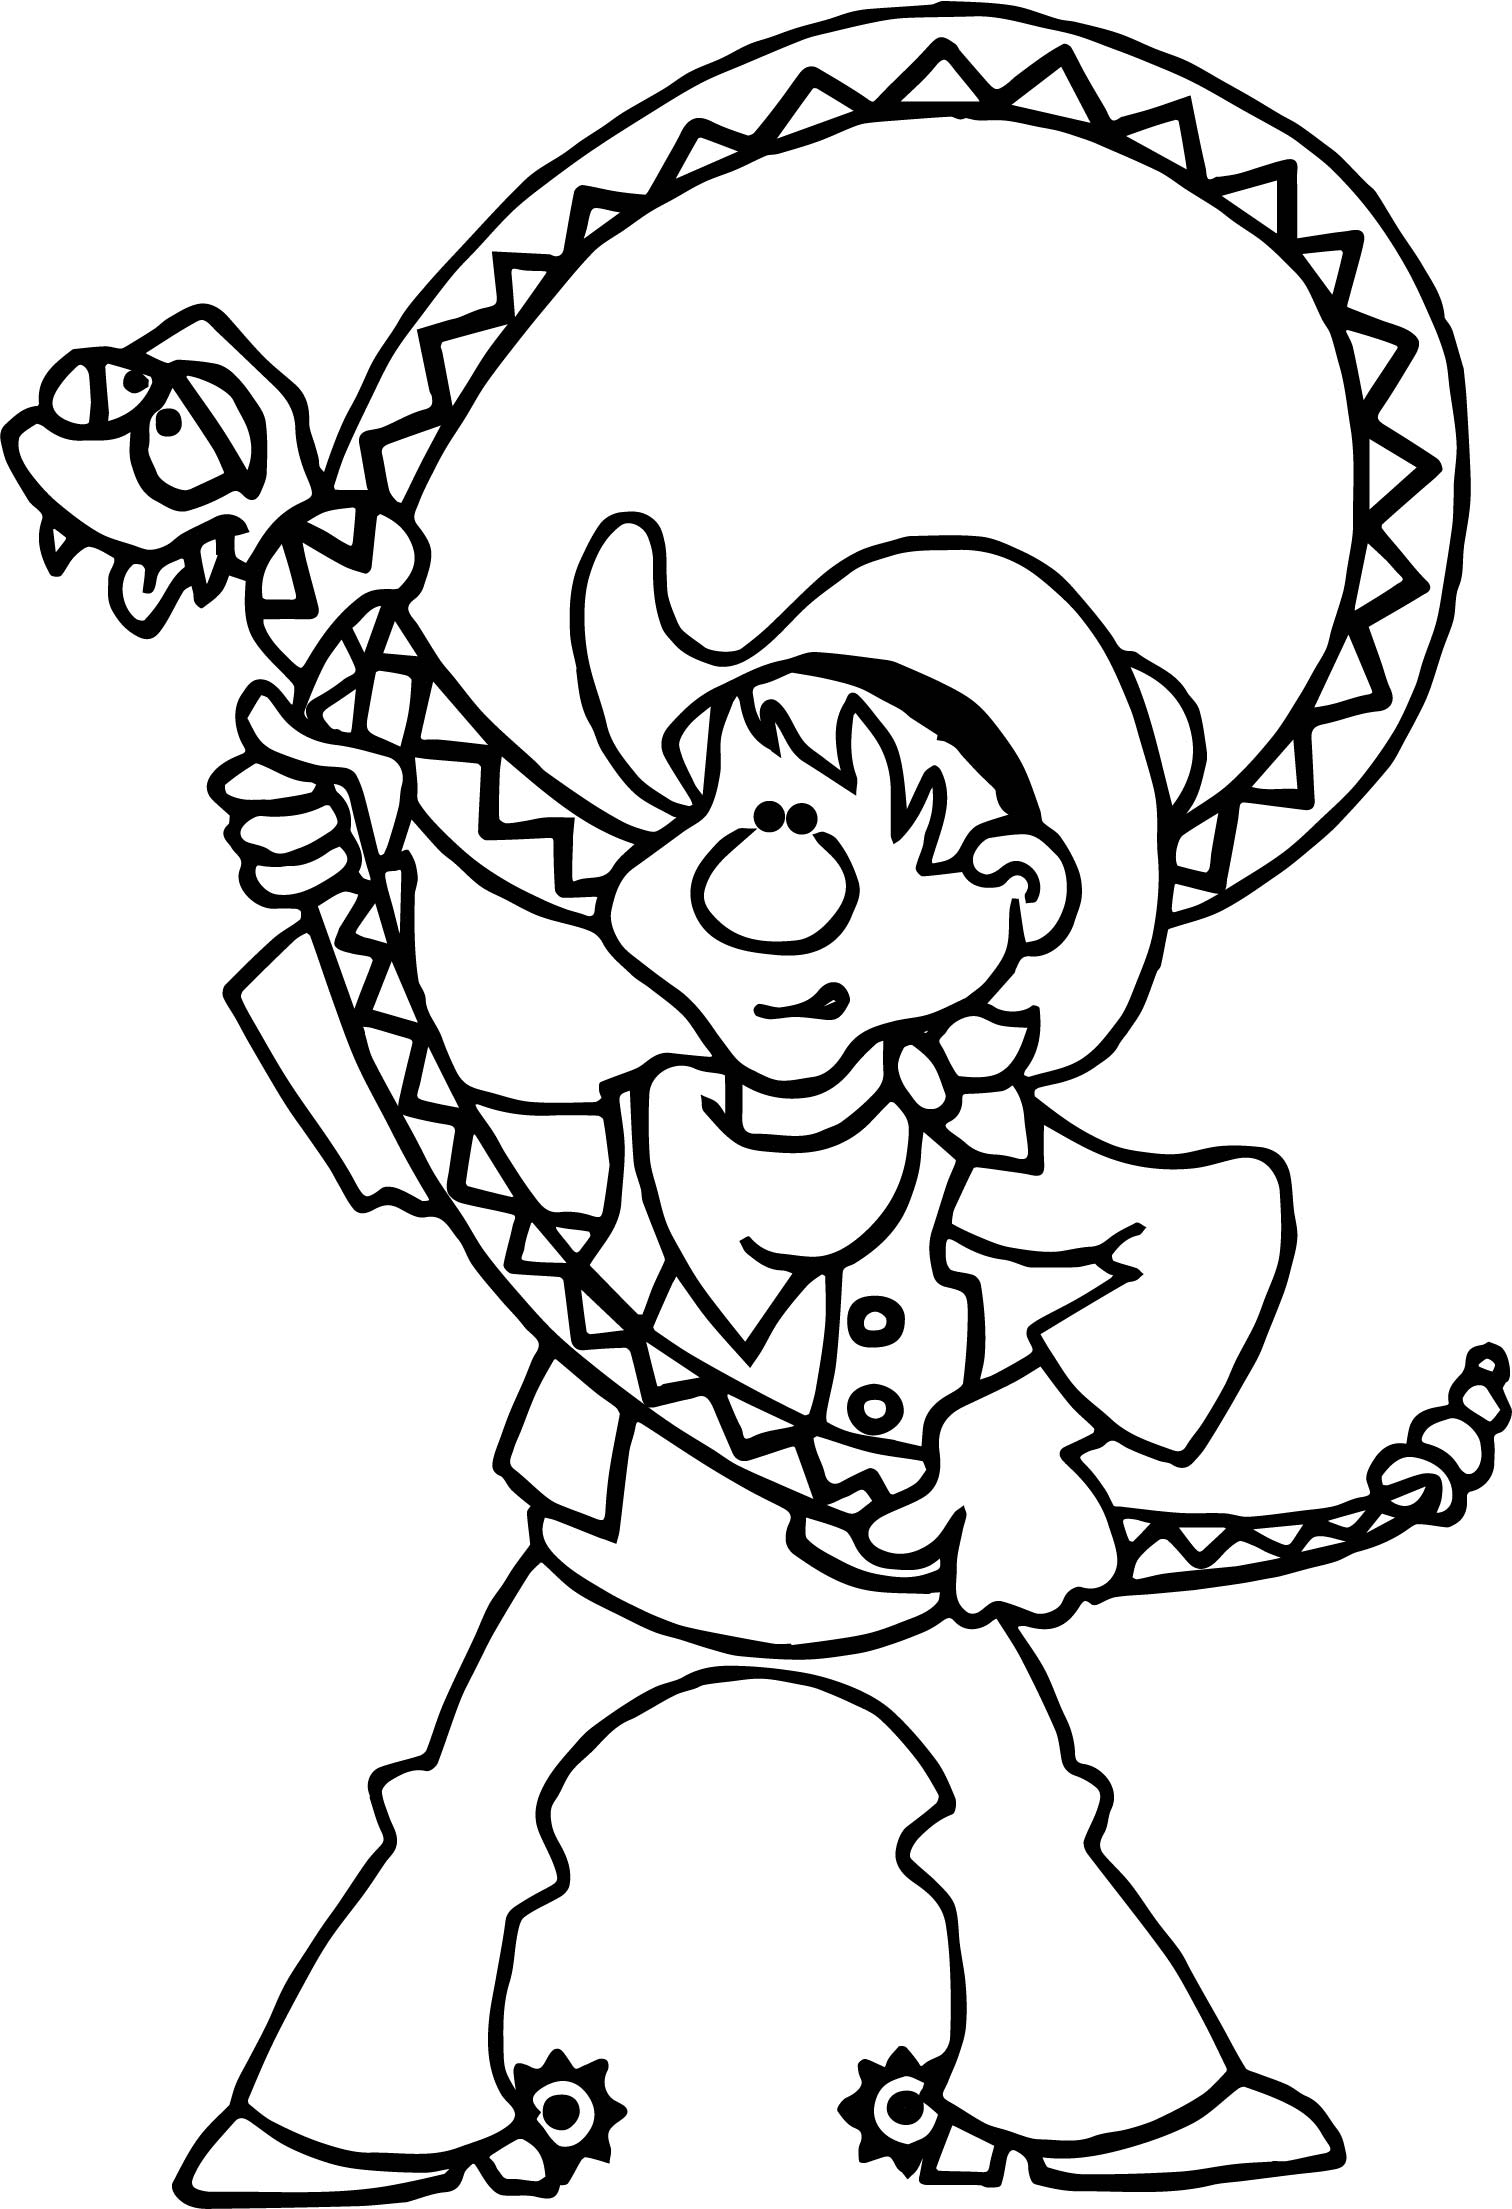 Texas Pecos Bill Cowboy Coloring Page